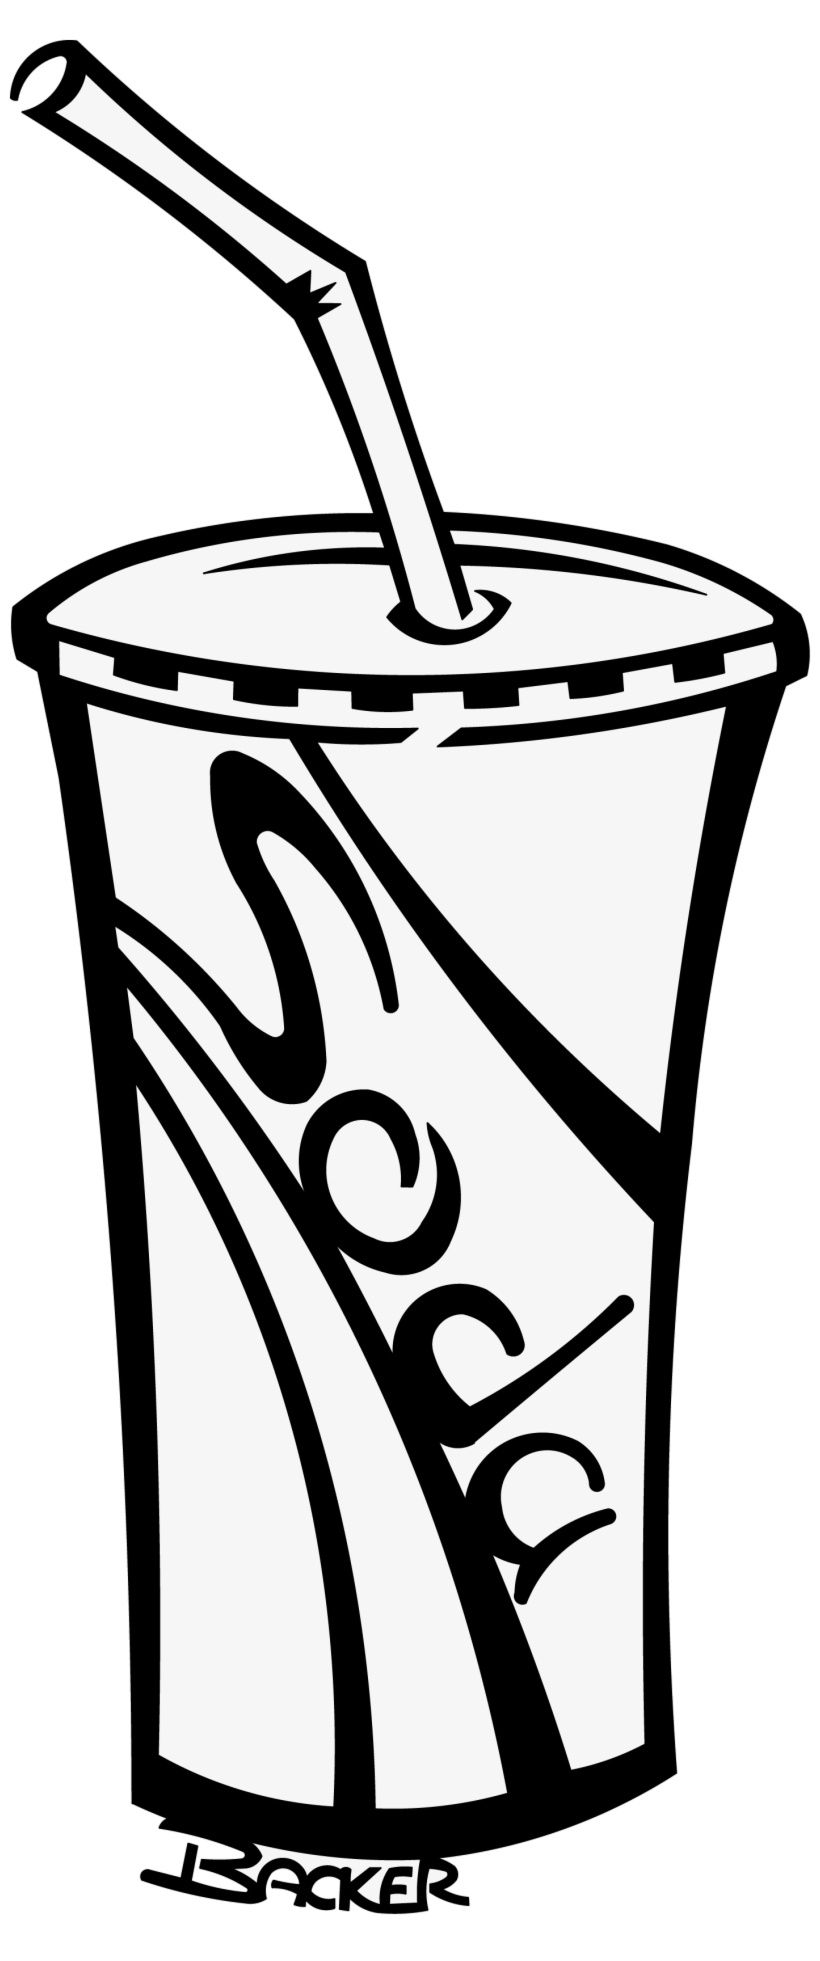 Help with drinks clipart black and white clip art royalty free download Soda Cup Soft Drinks Clipart Black And White Free ... clip art royalty free download